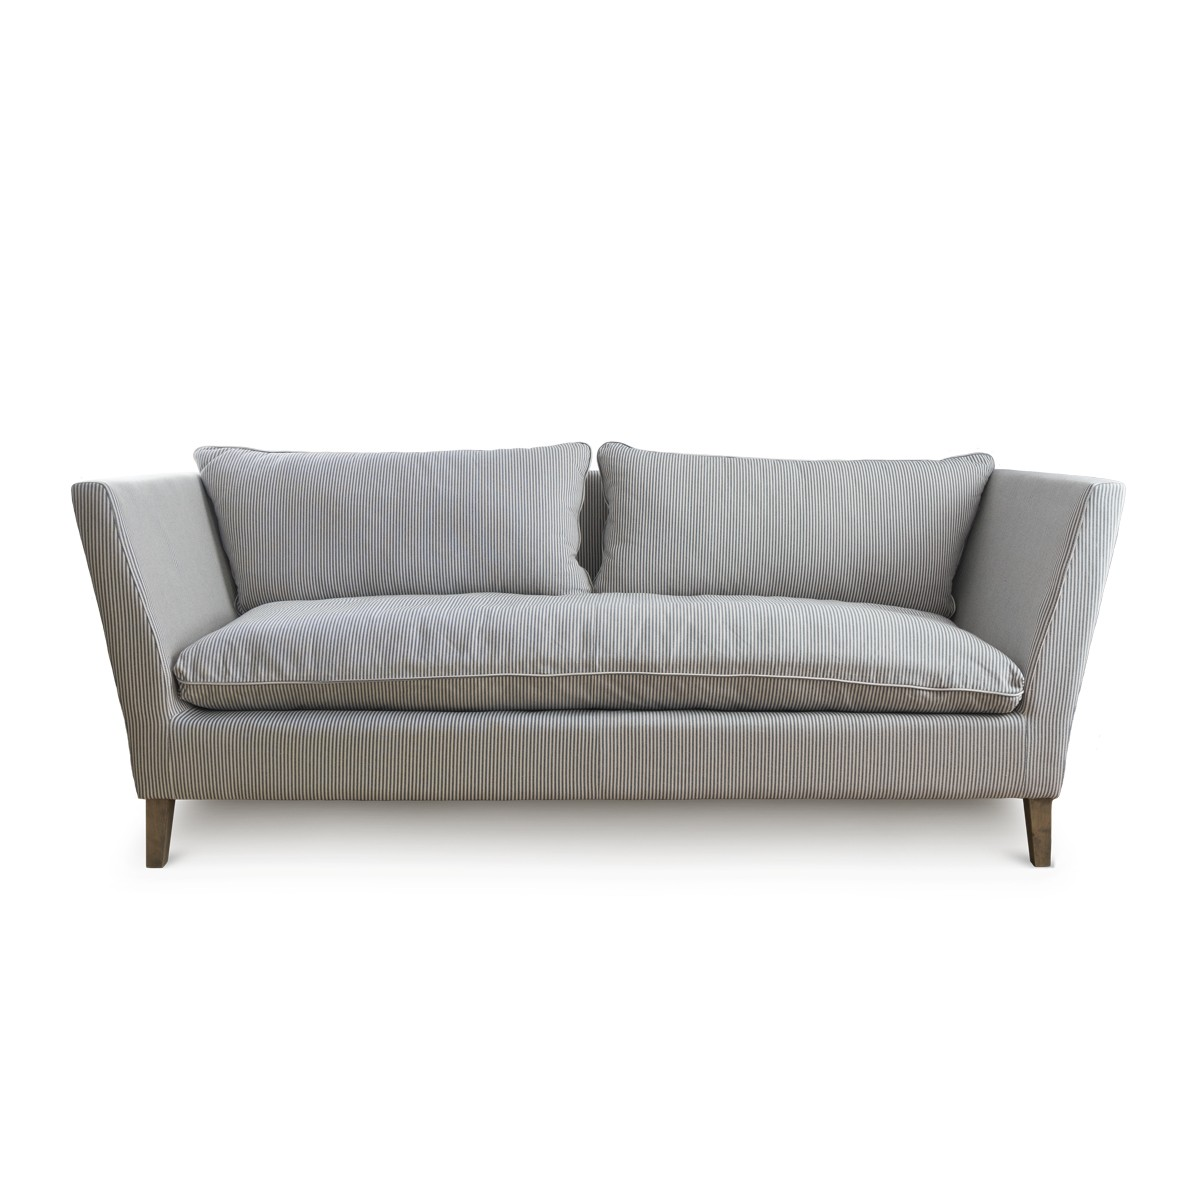 ESSENTIAL SOFA I NEW